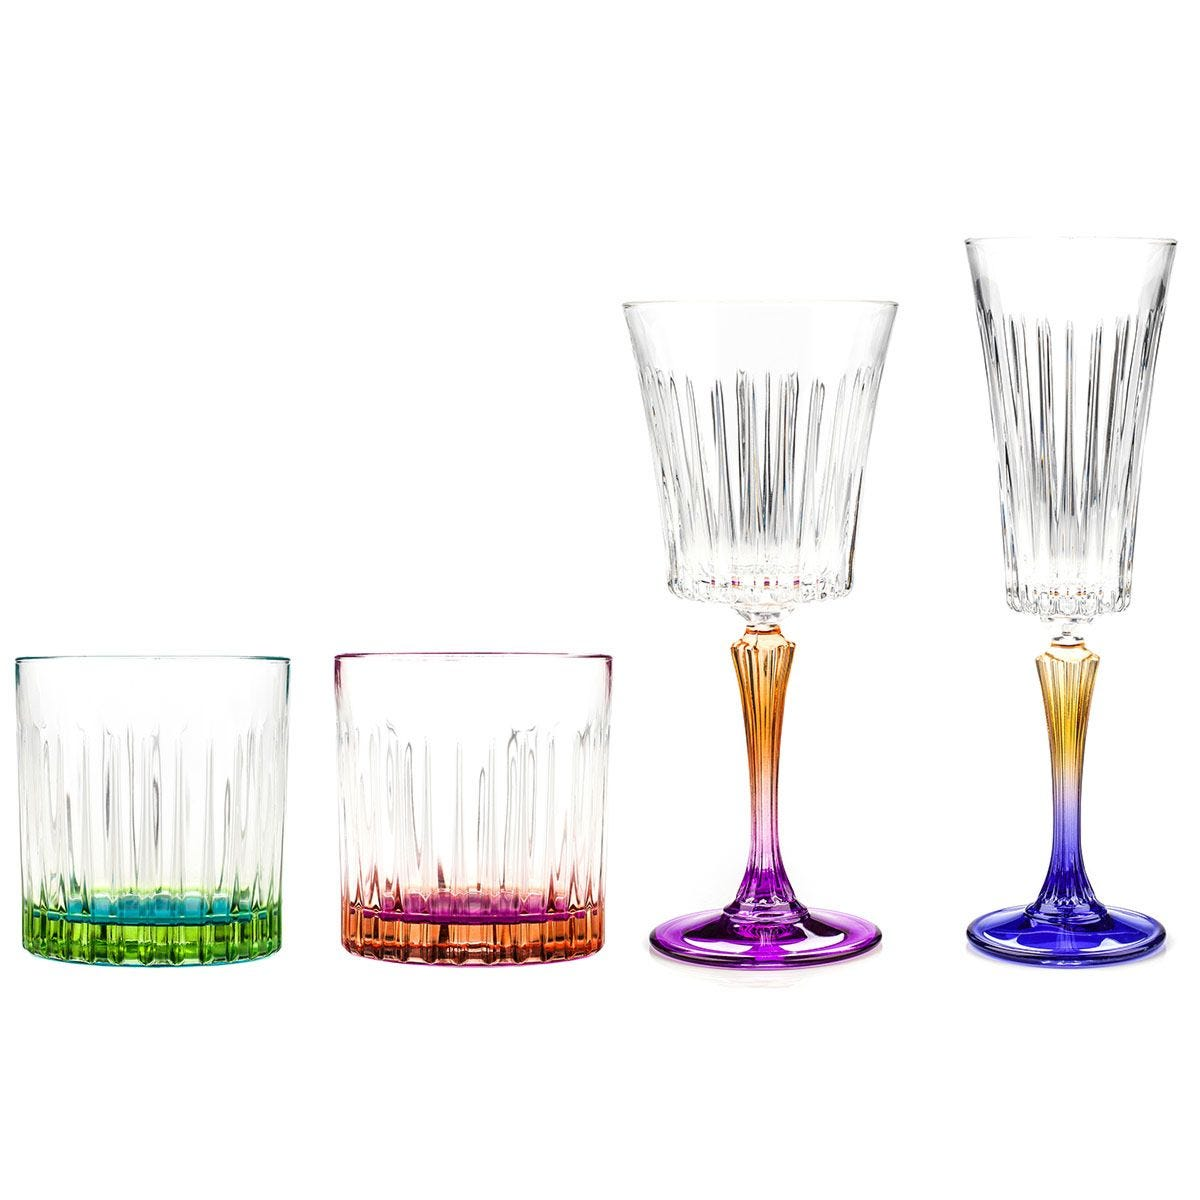 RCR Gipsy Luxion Crystal Drinkware Collection - 24 Piece